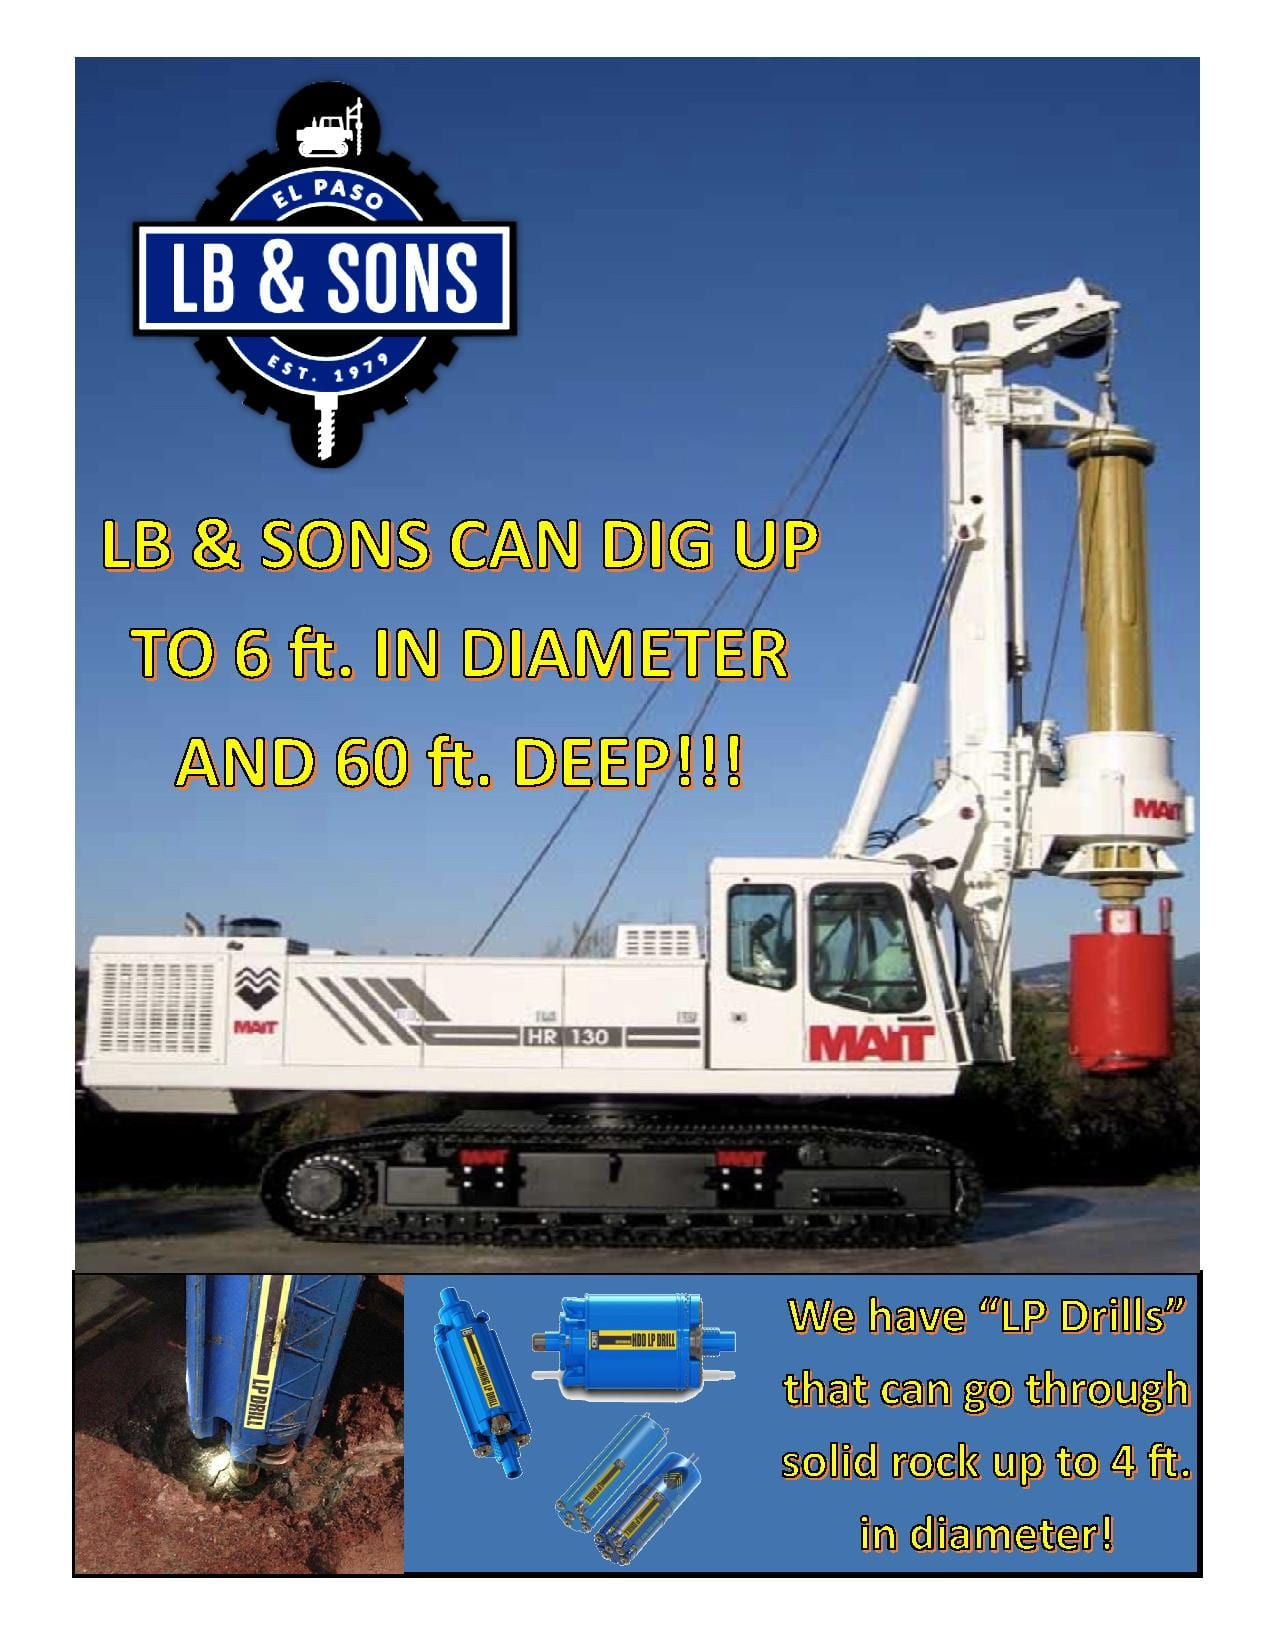 an LB & Sons drill with informative text around it